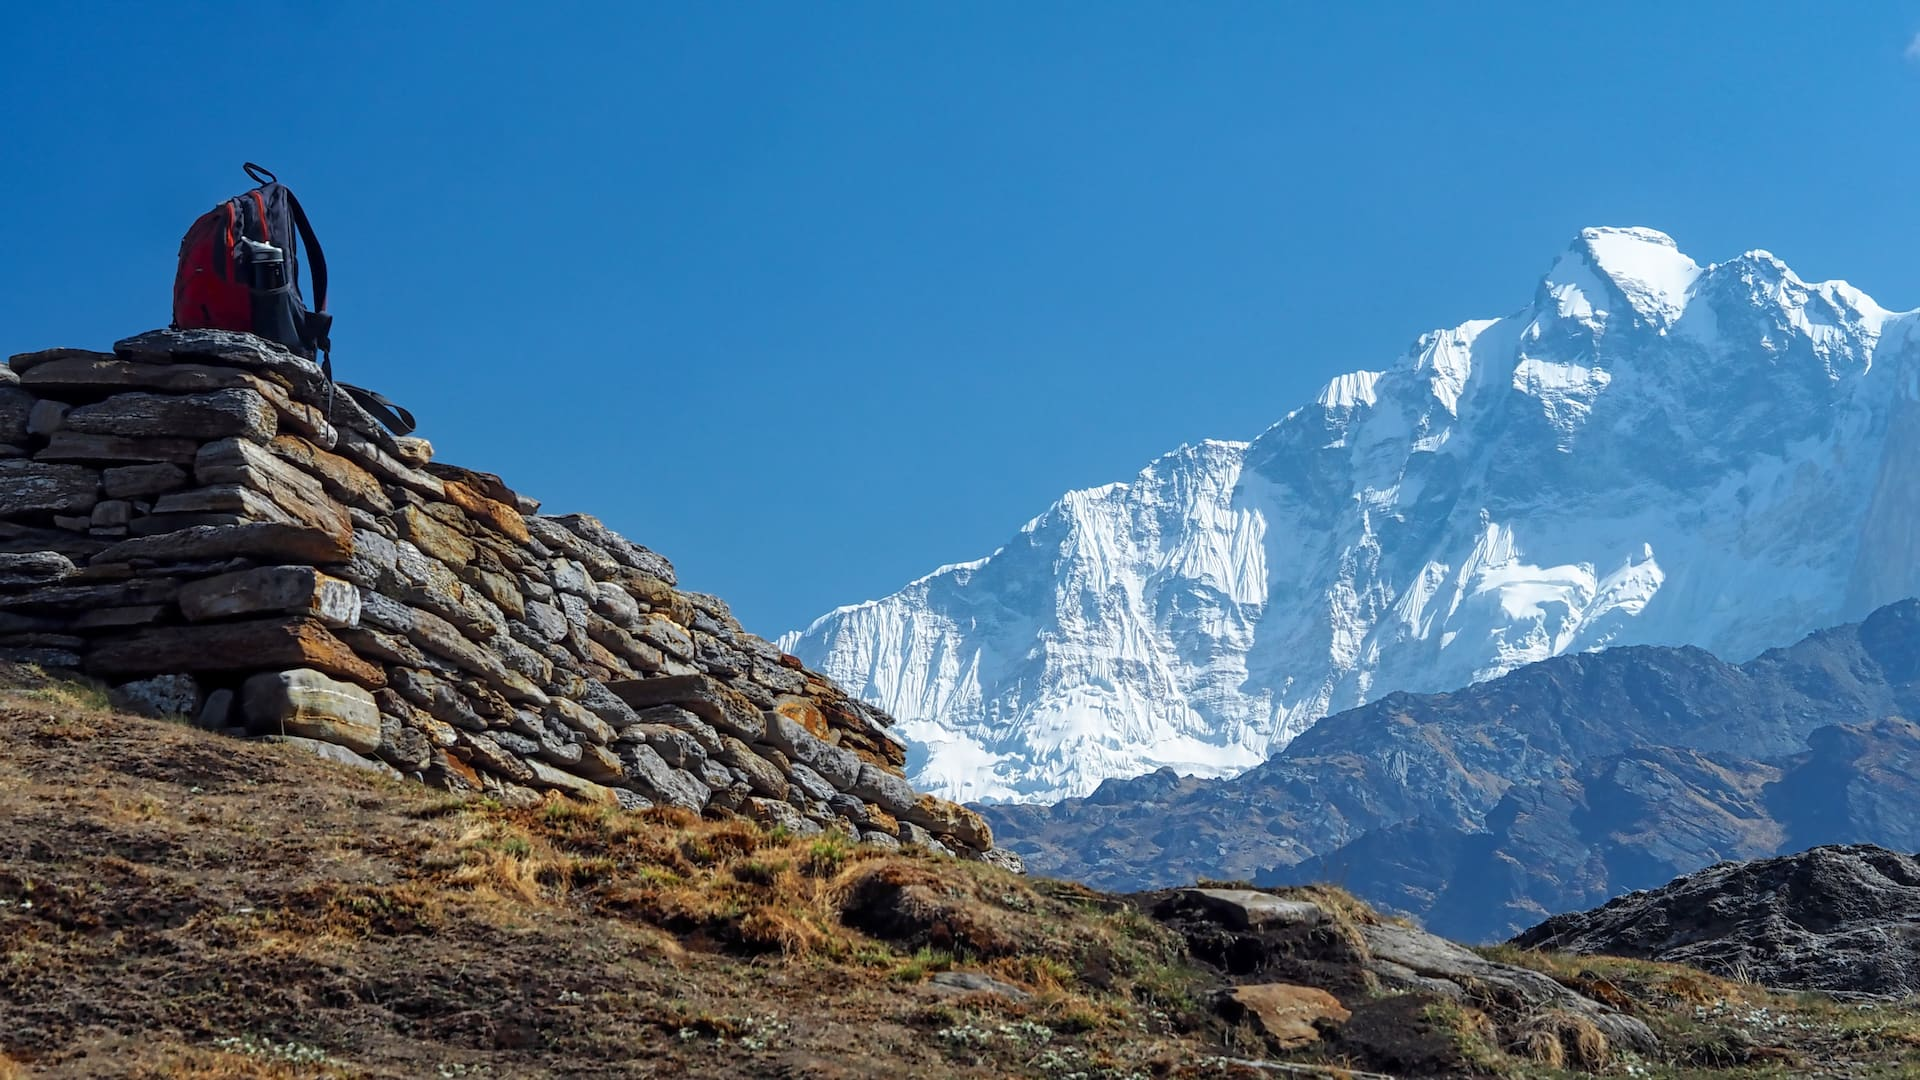 An orange backpack on a wall (left) and white snow-capped mountains (right)